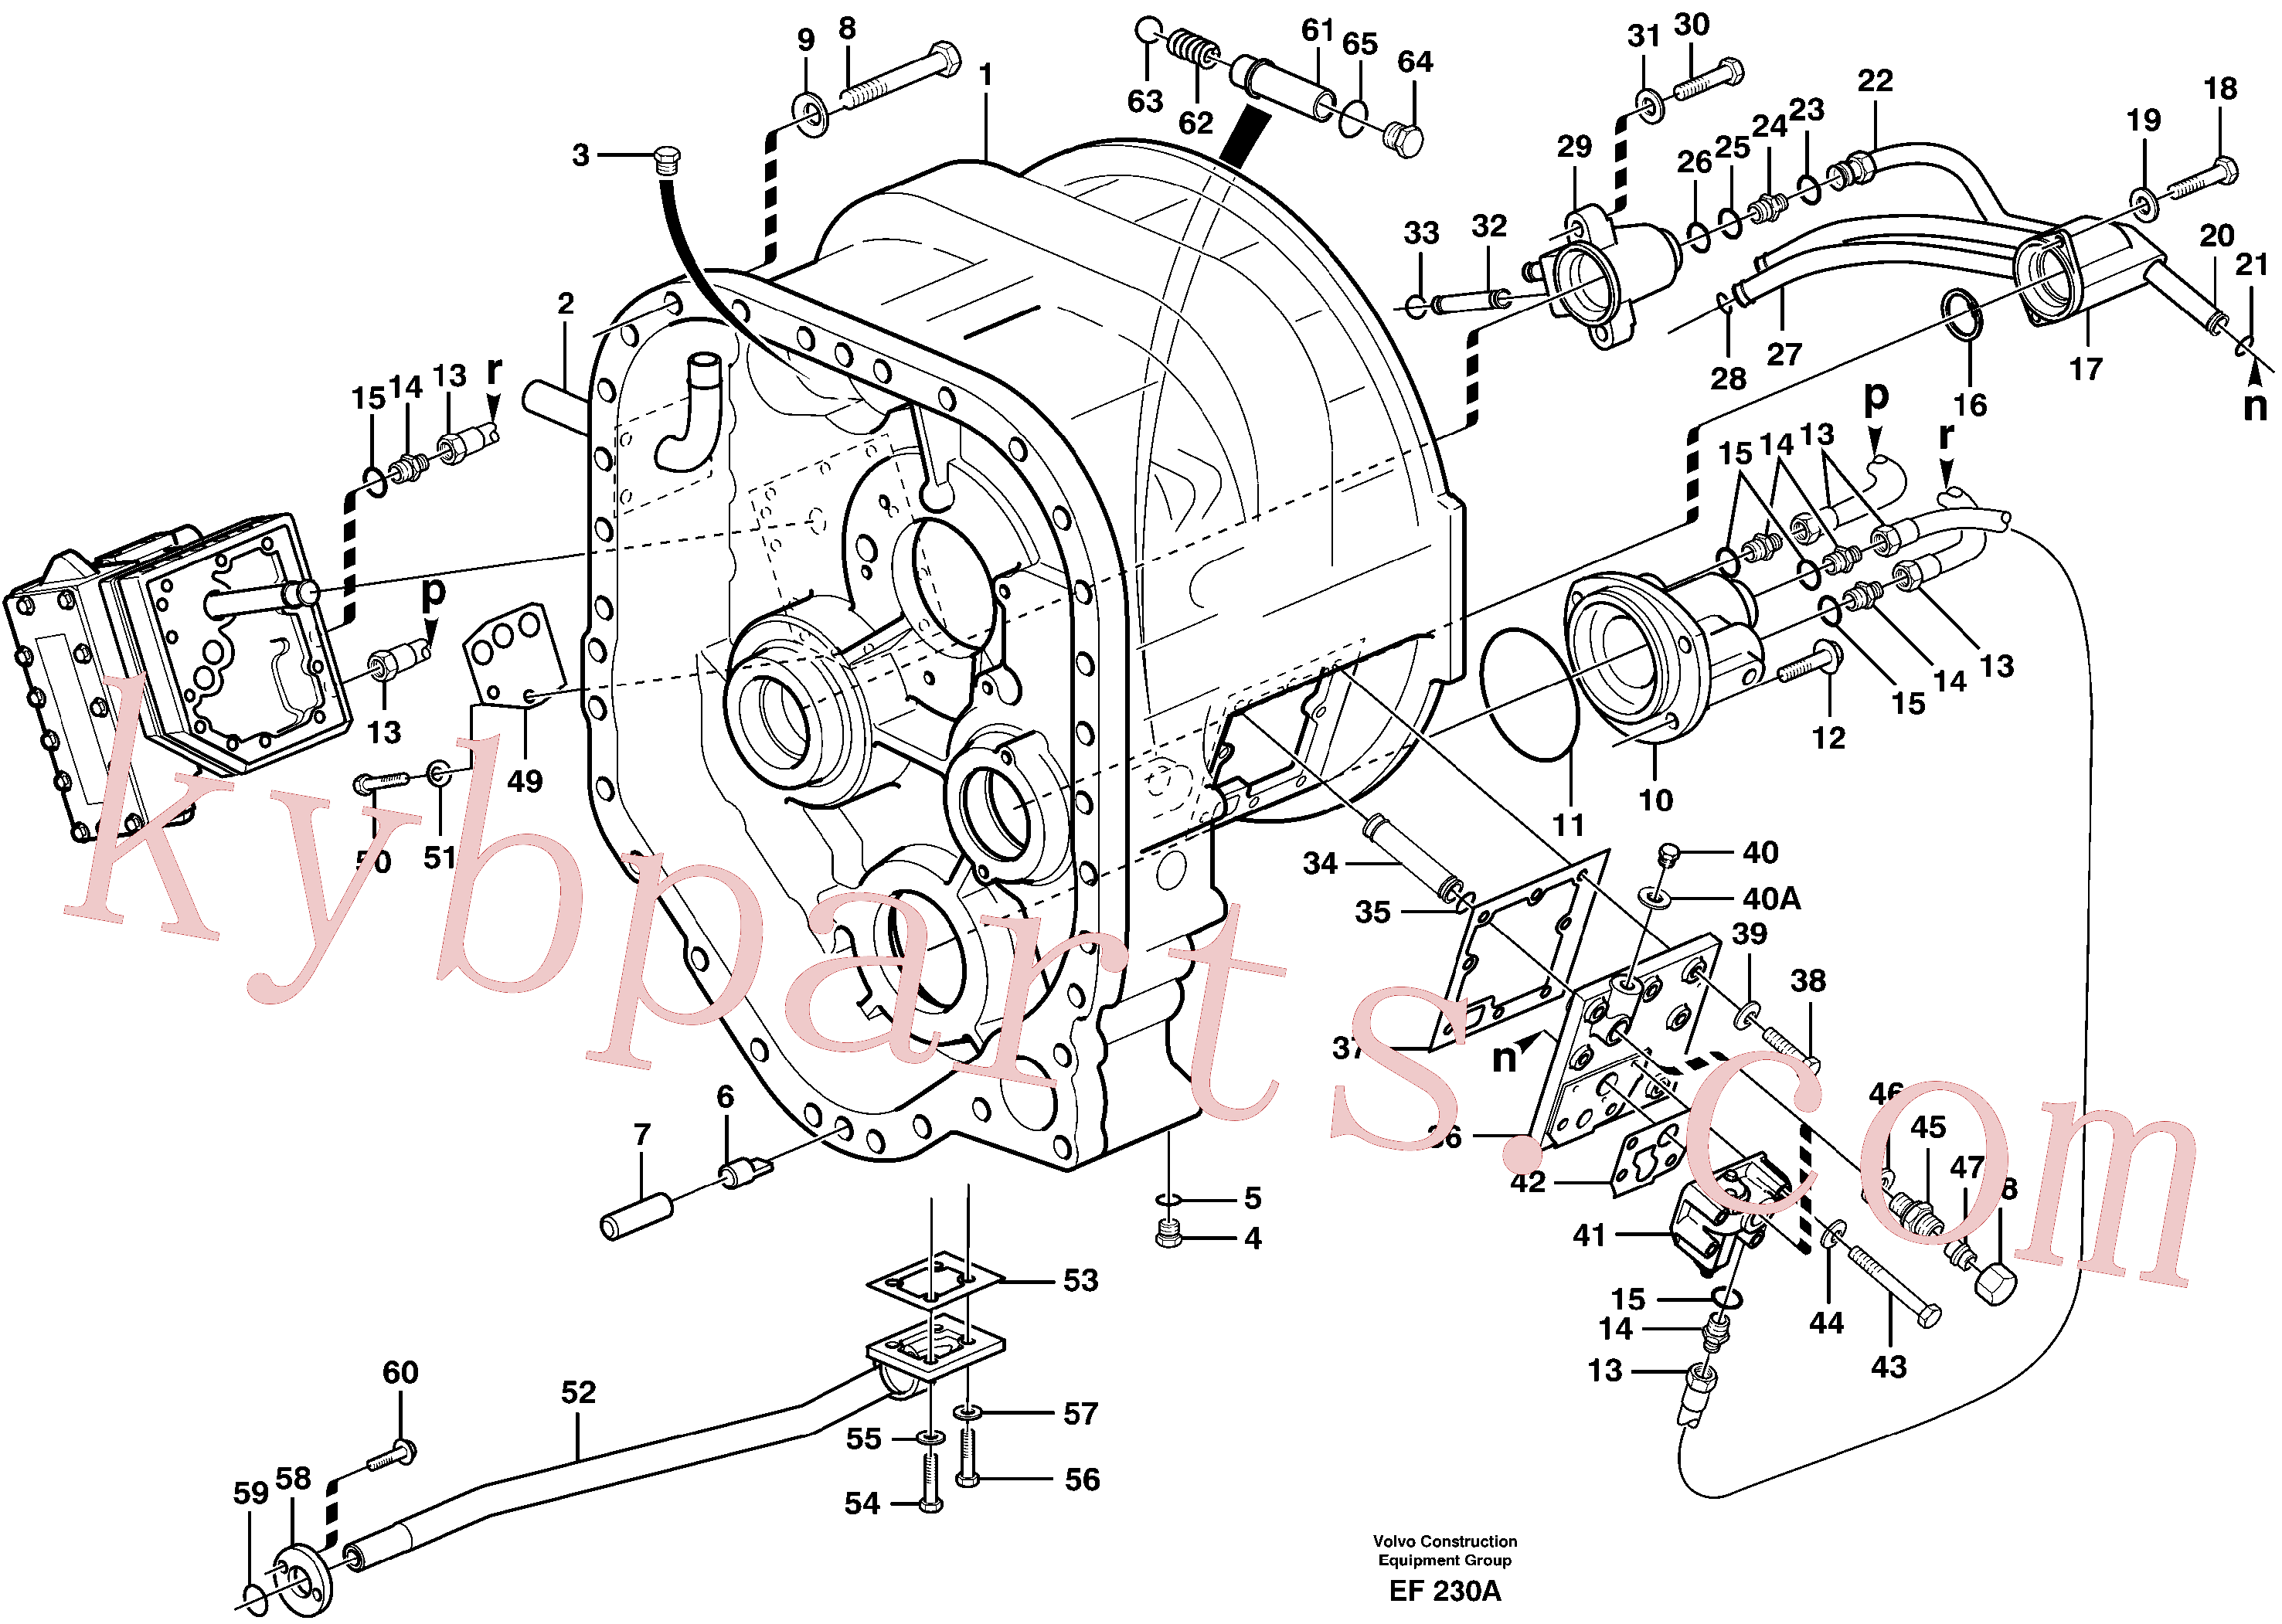 VOE941371 for Volvo Converter housing with fitting parts(EF230A assembly)